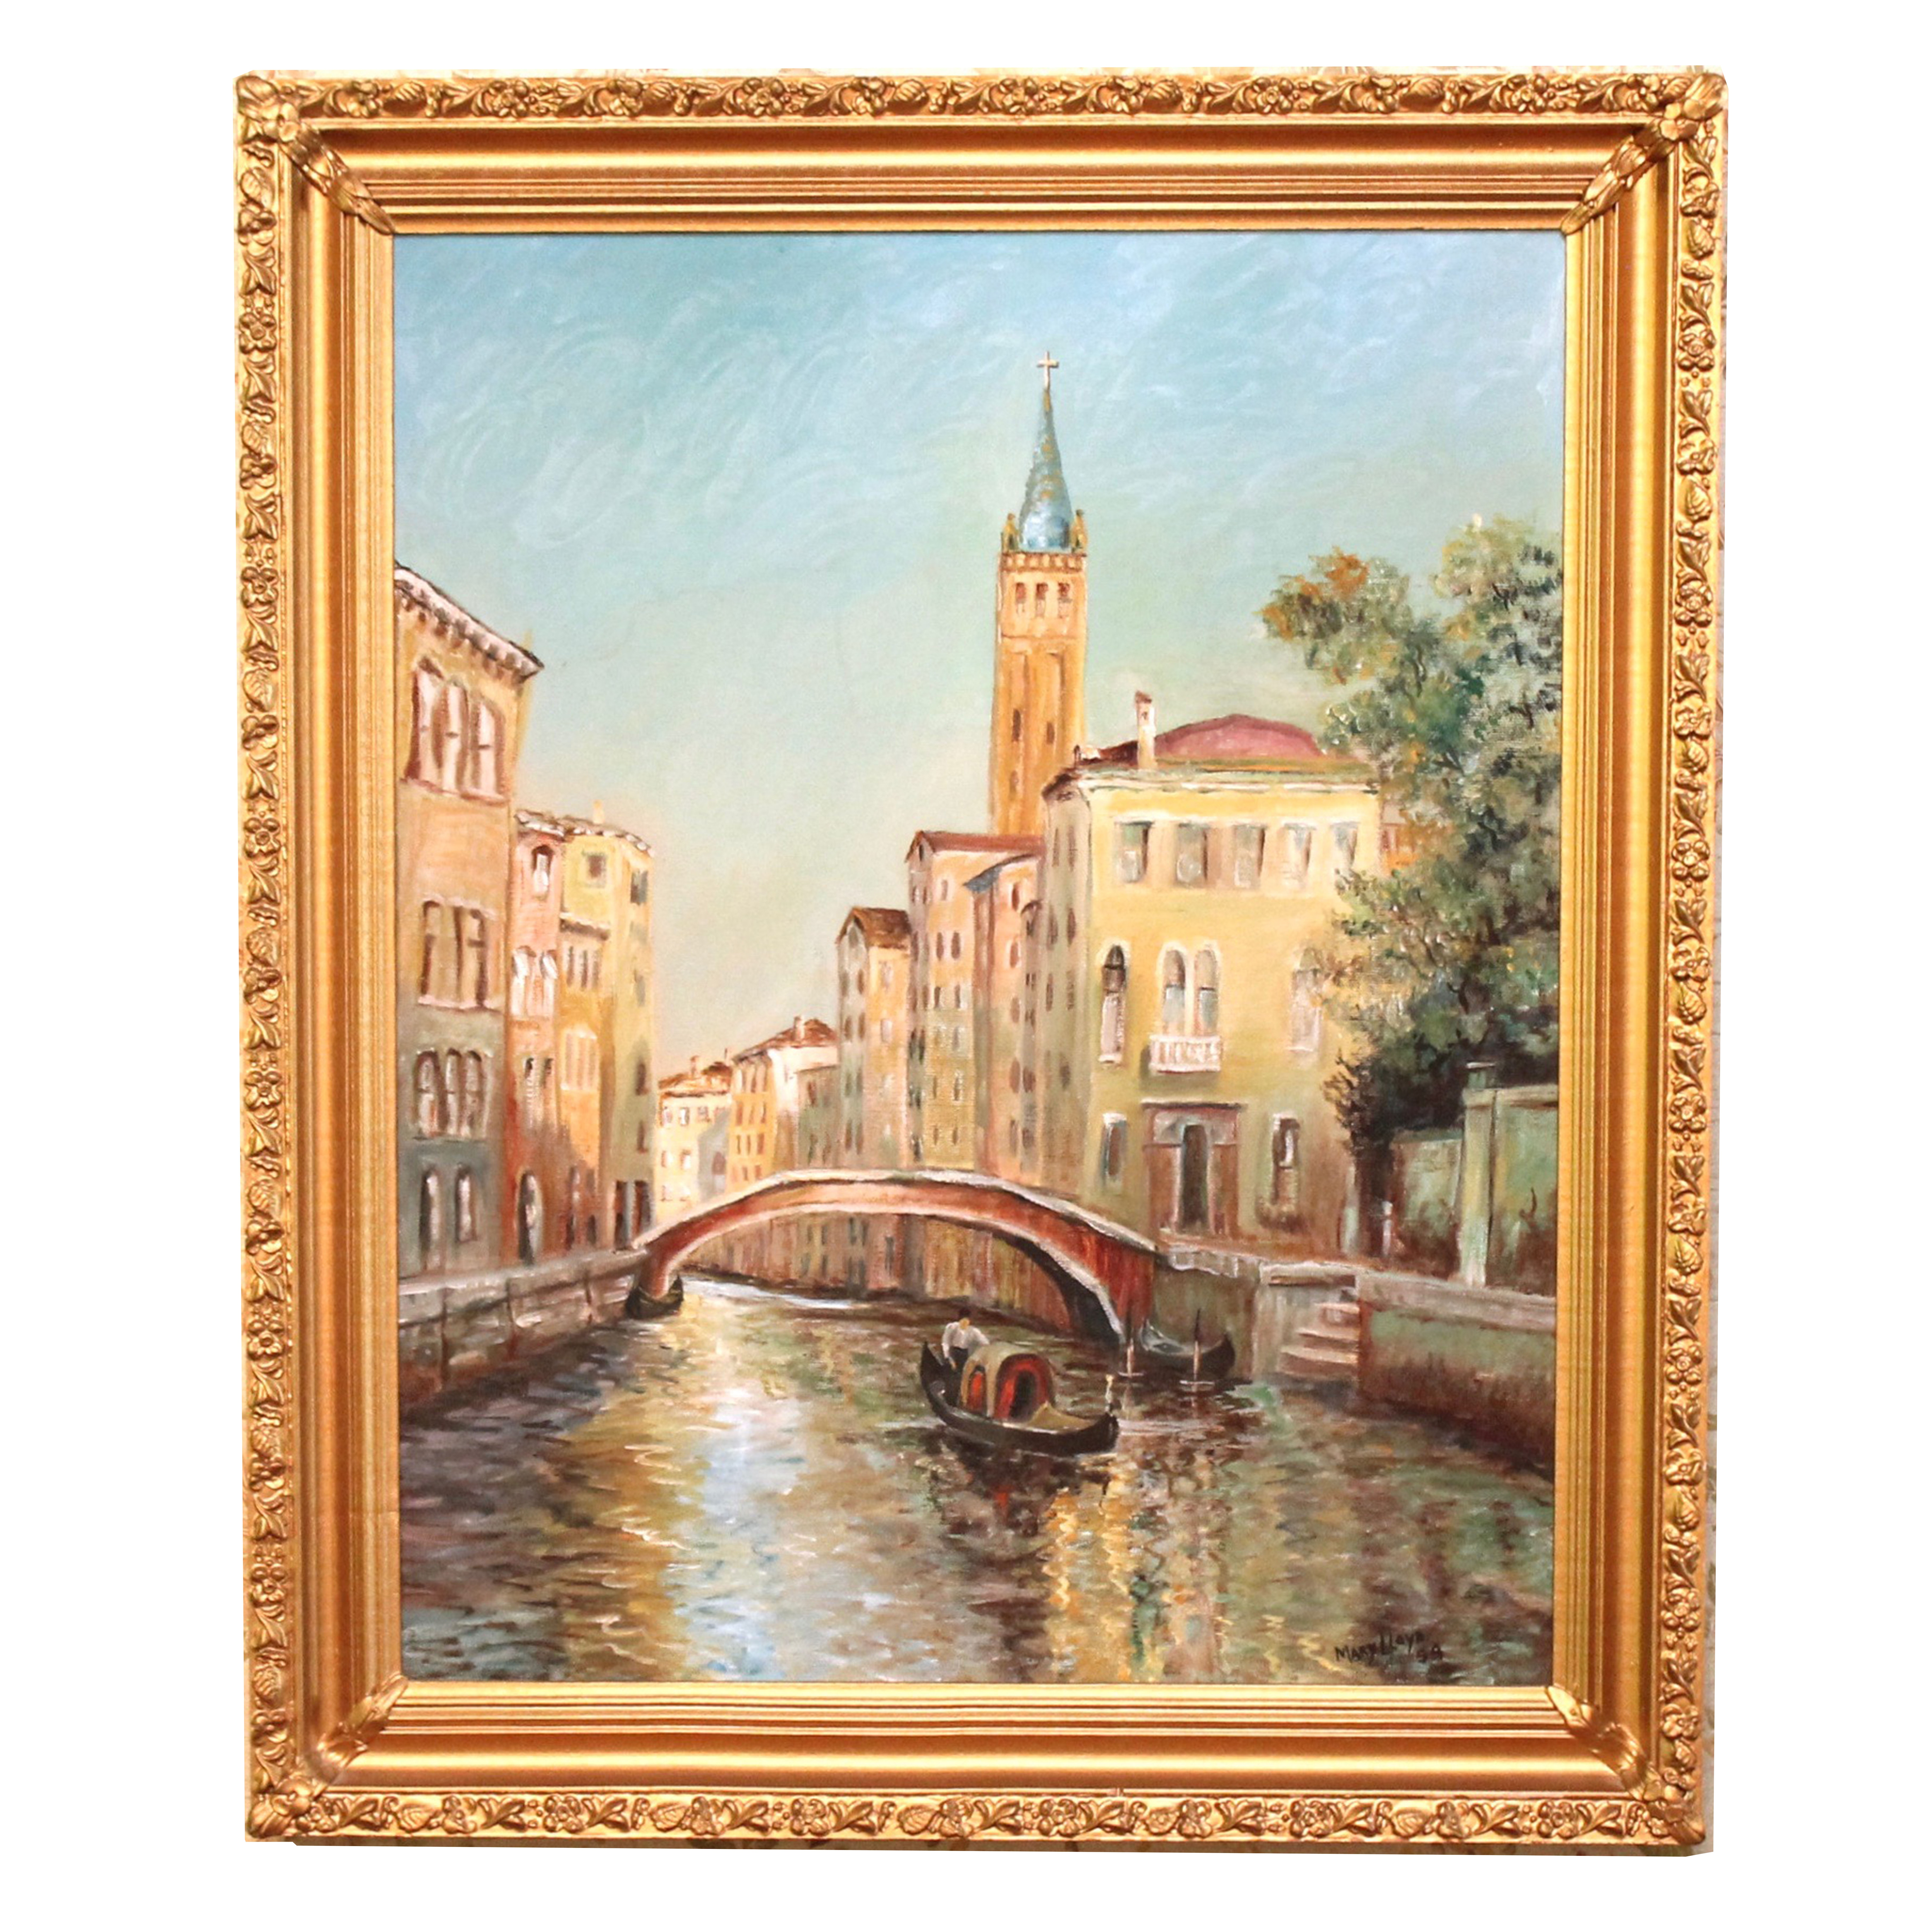 1959 Mary Lloyd Acrylic Painting of Venice Canal